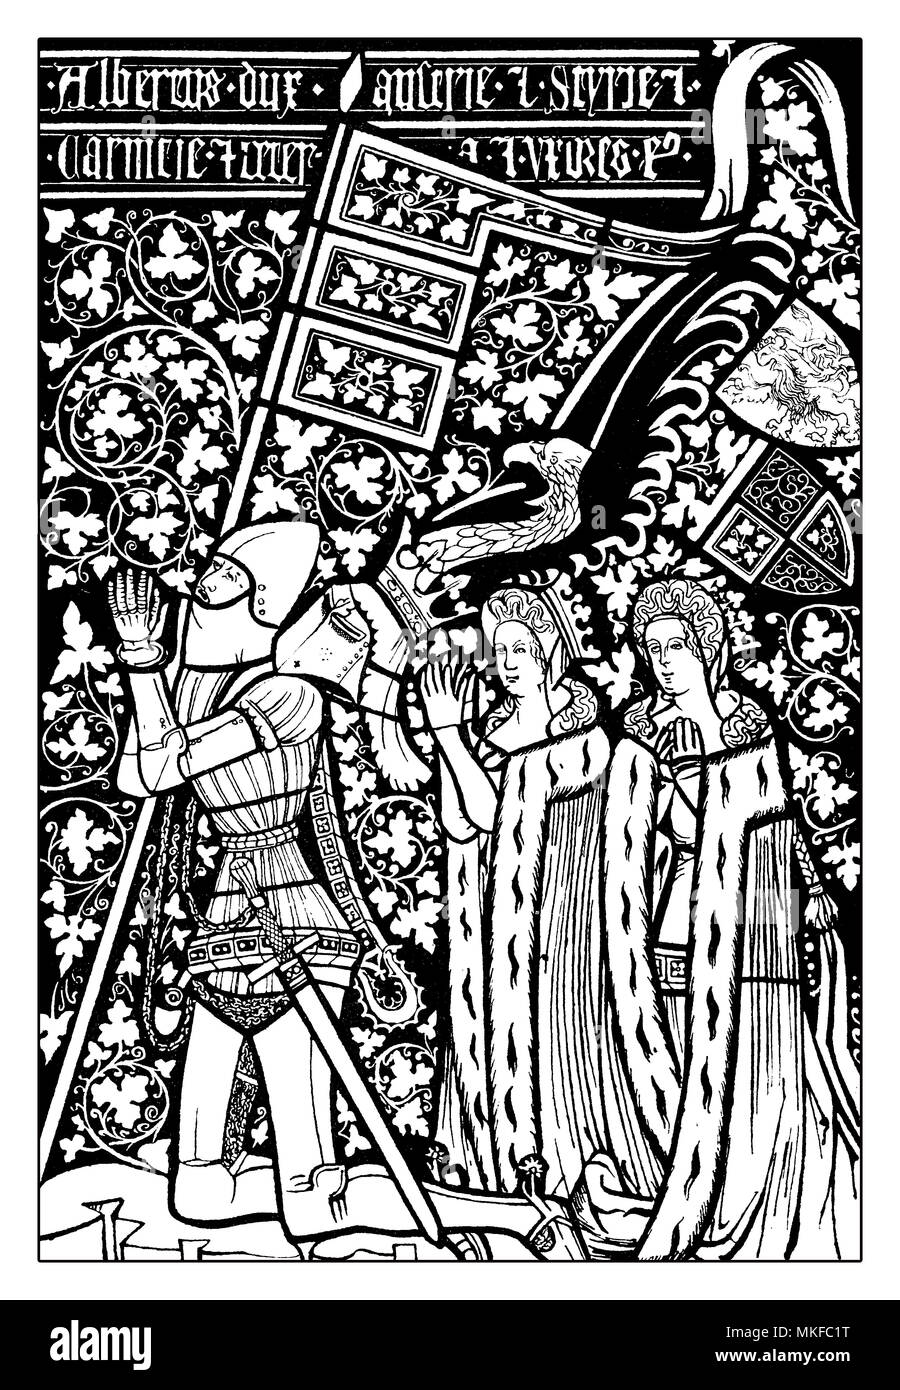 Albert  (Albrecht) III duke of Austria, known as Albert with the Pigtail, member of the House of Habsburg in armor with two of his wives royally clothed - Stock Image